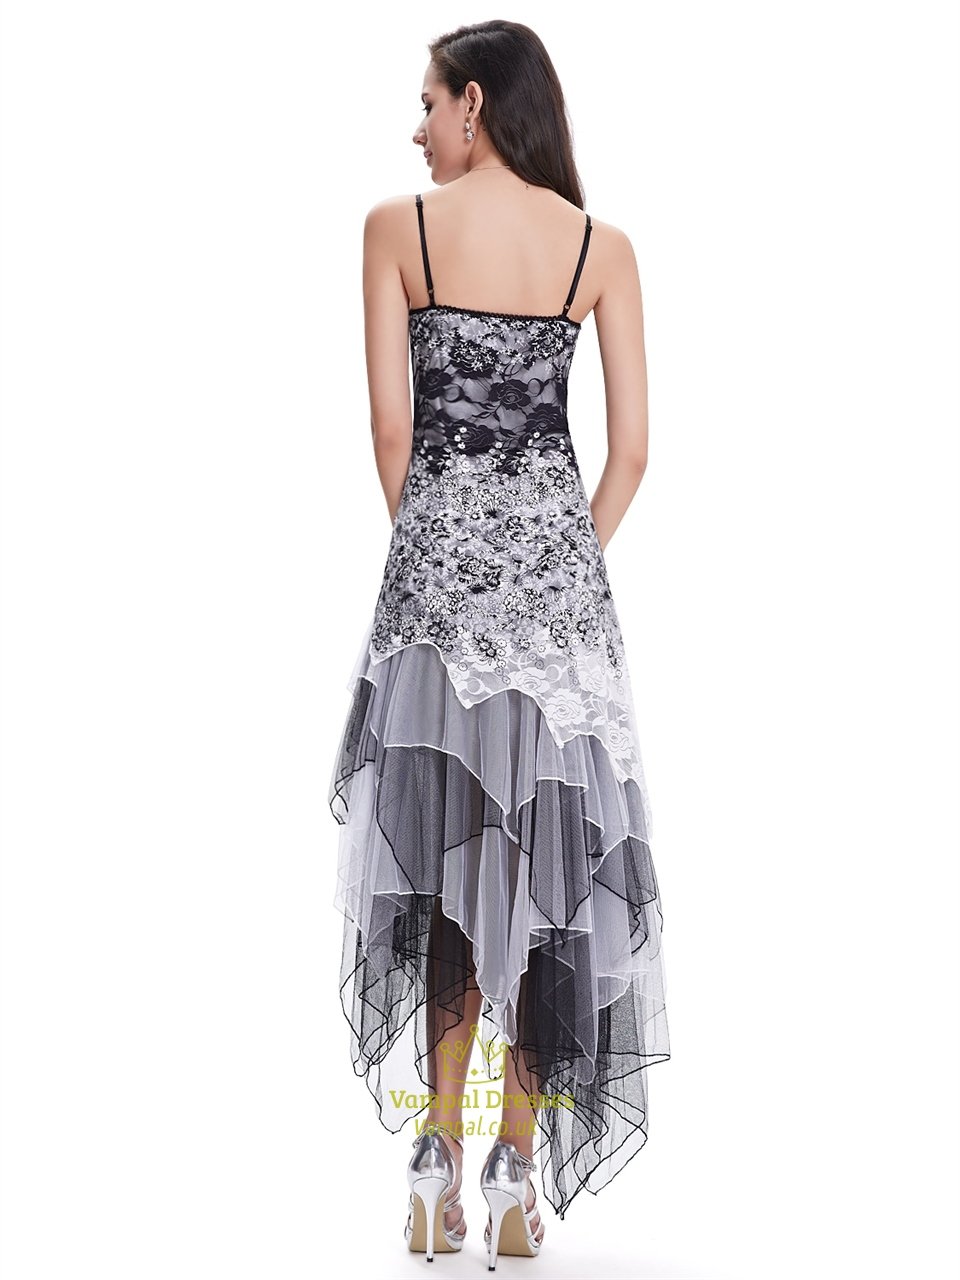 Shop for women's cheap dresses at DressHead Online Store. coolmfilehj.cf offers a wide variety of women's clothes including white black red lace maxi dress and so on.